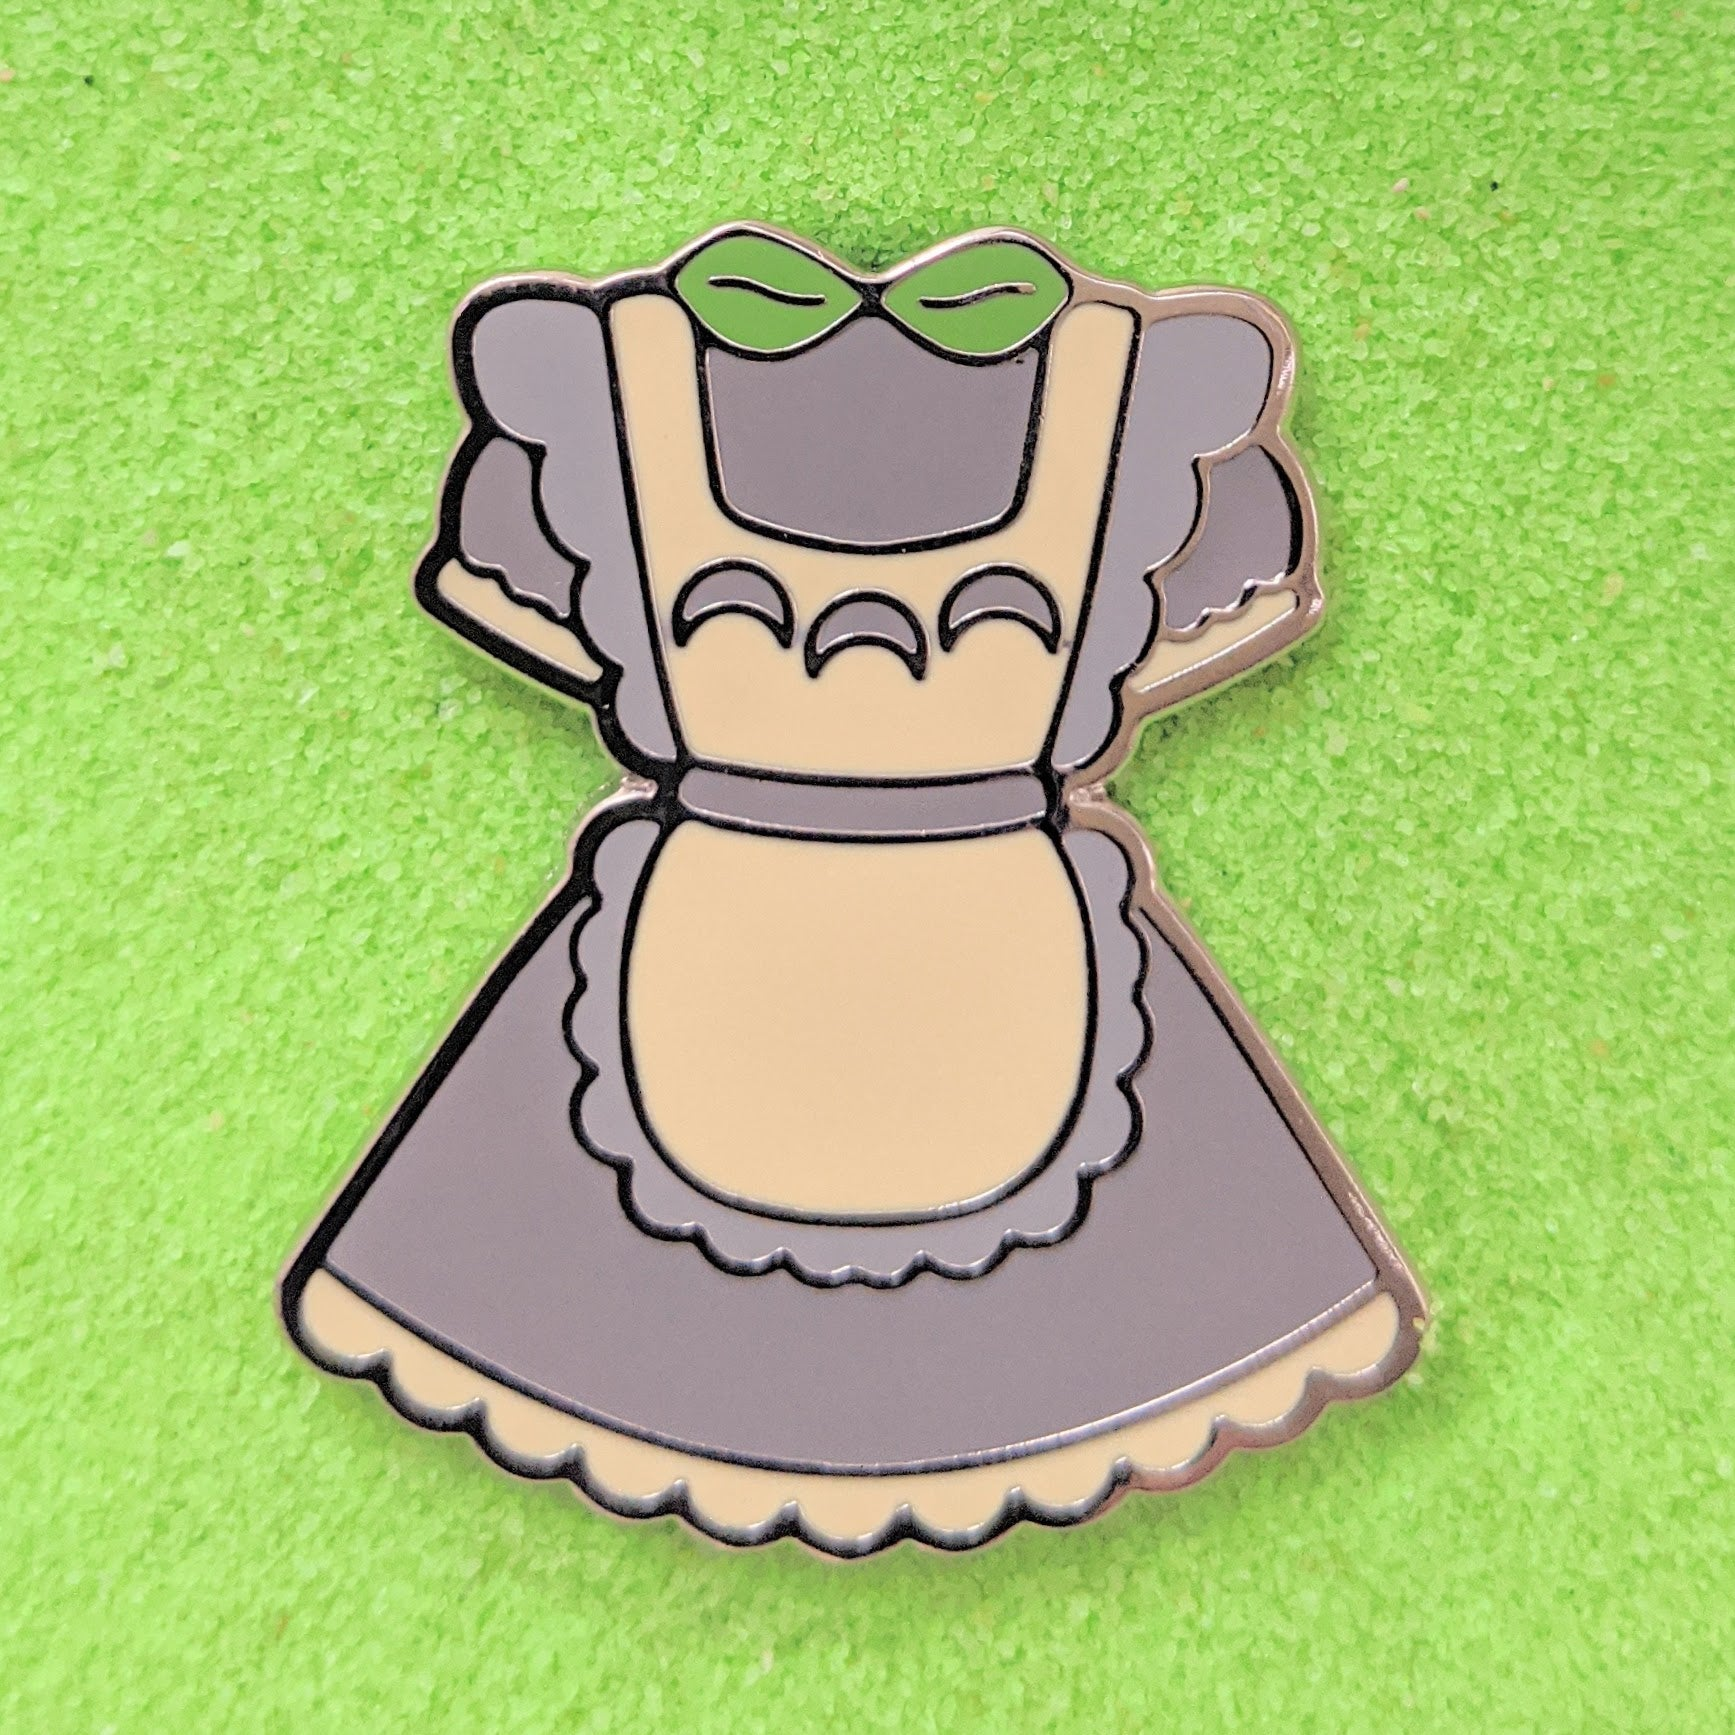 Totoro Dress Ghibli  - Enamel Pin